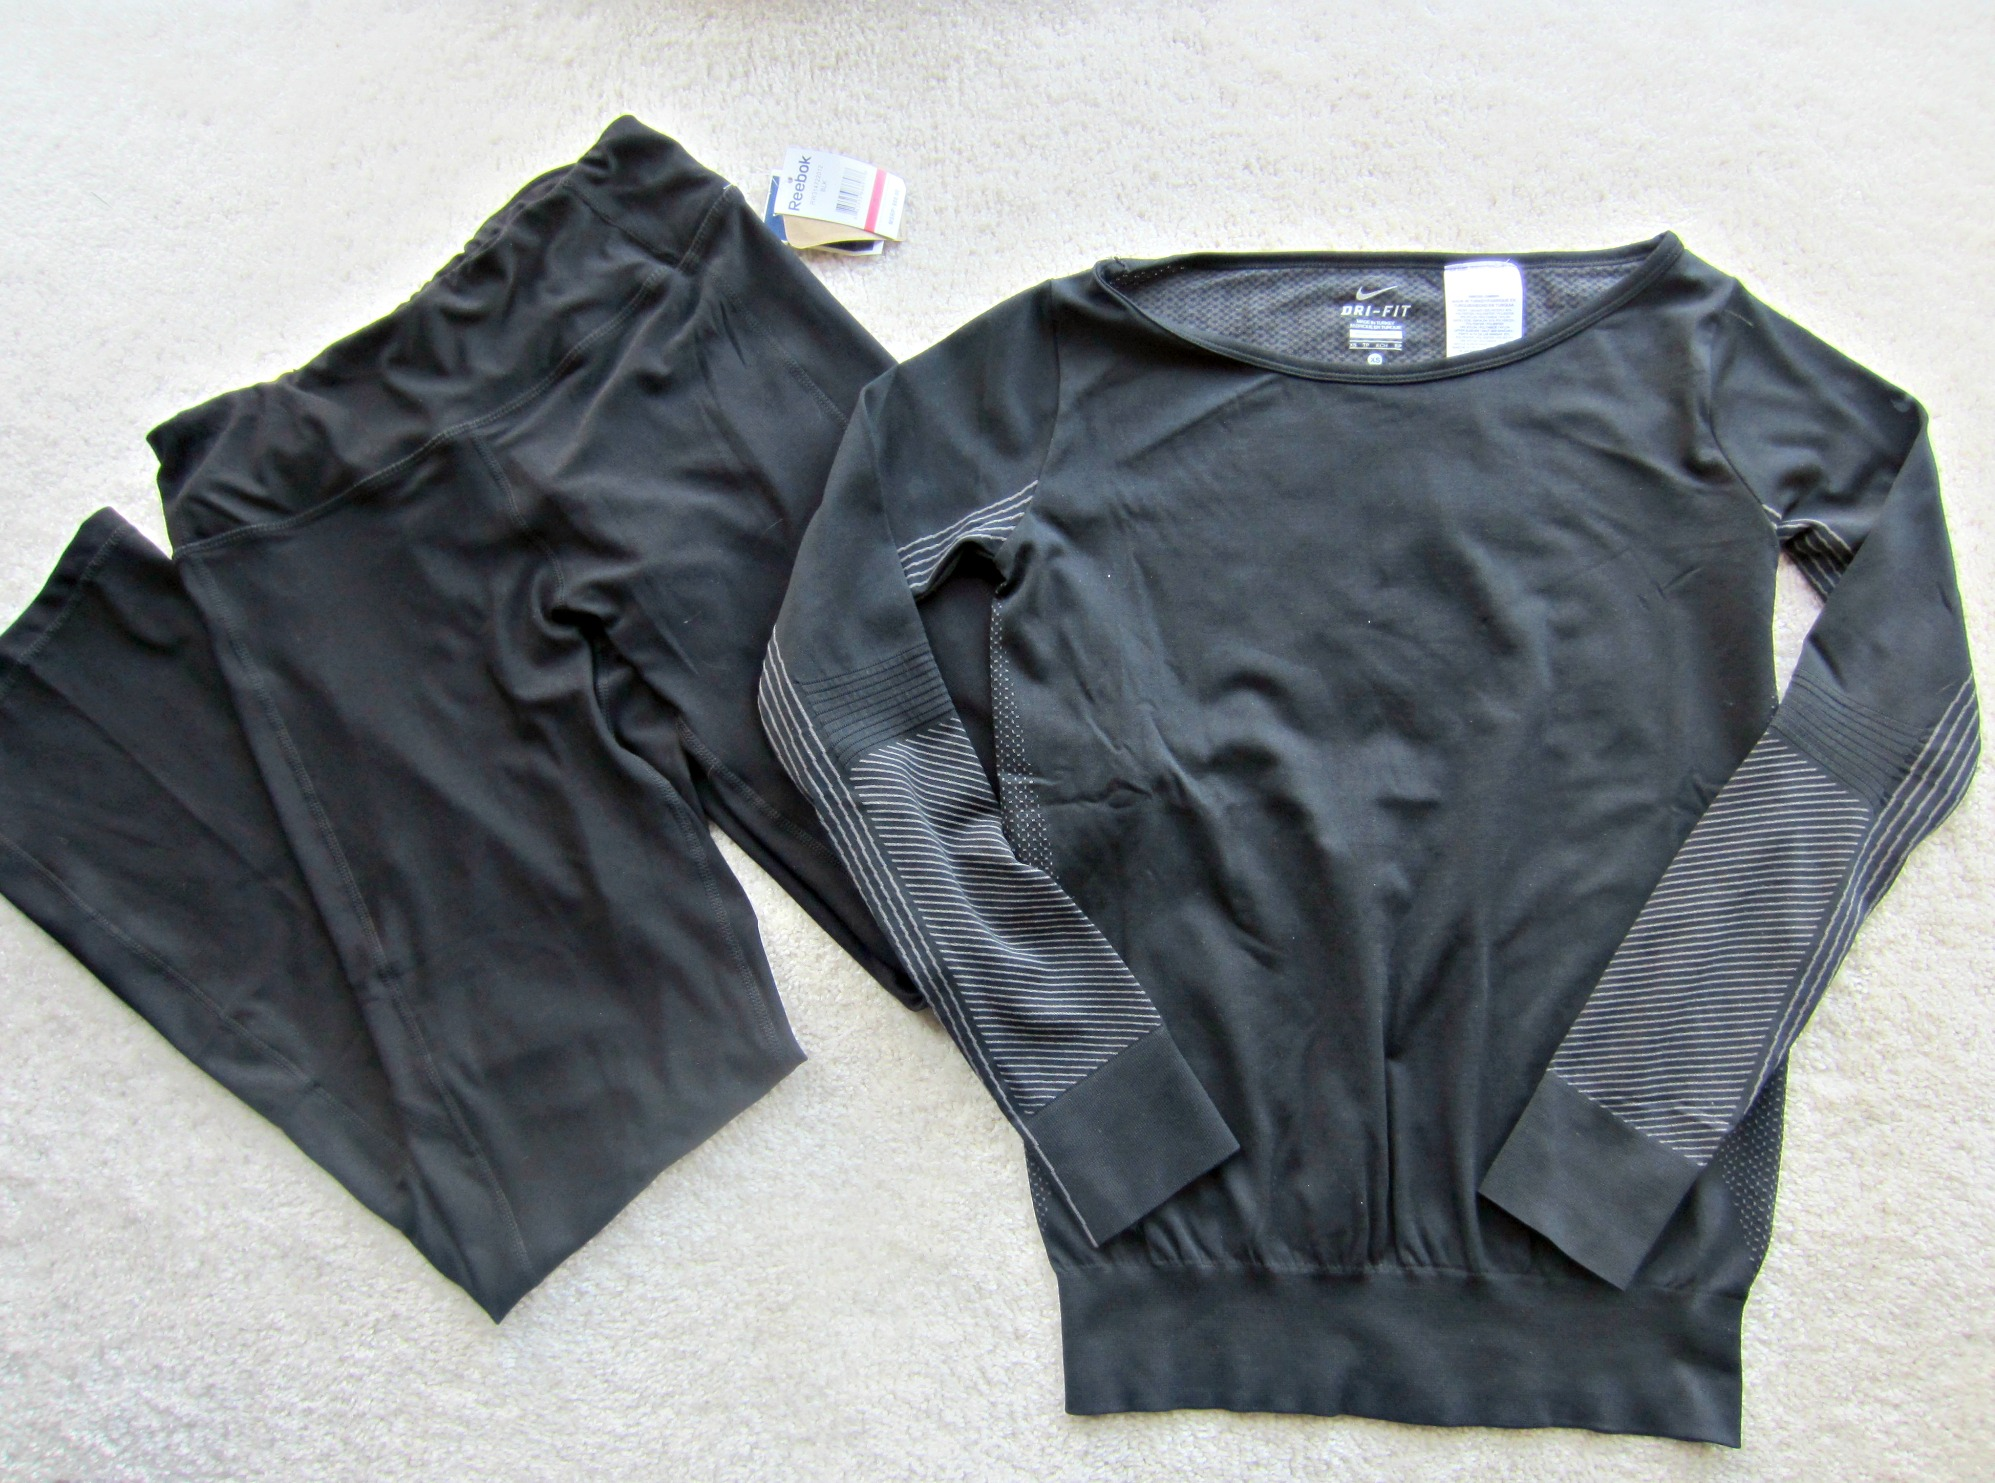 Nike Dri Fit shirt and Reebok active pants from Marshalls